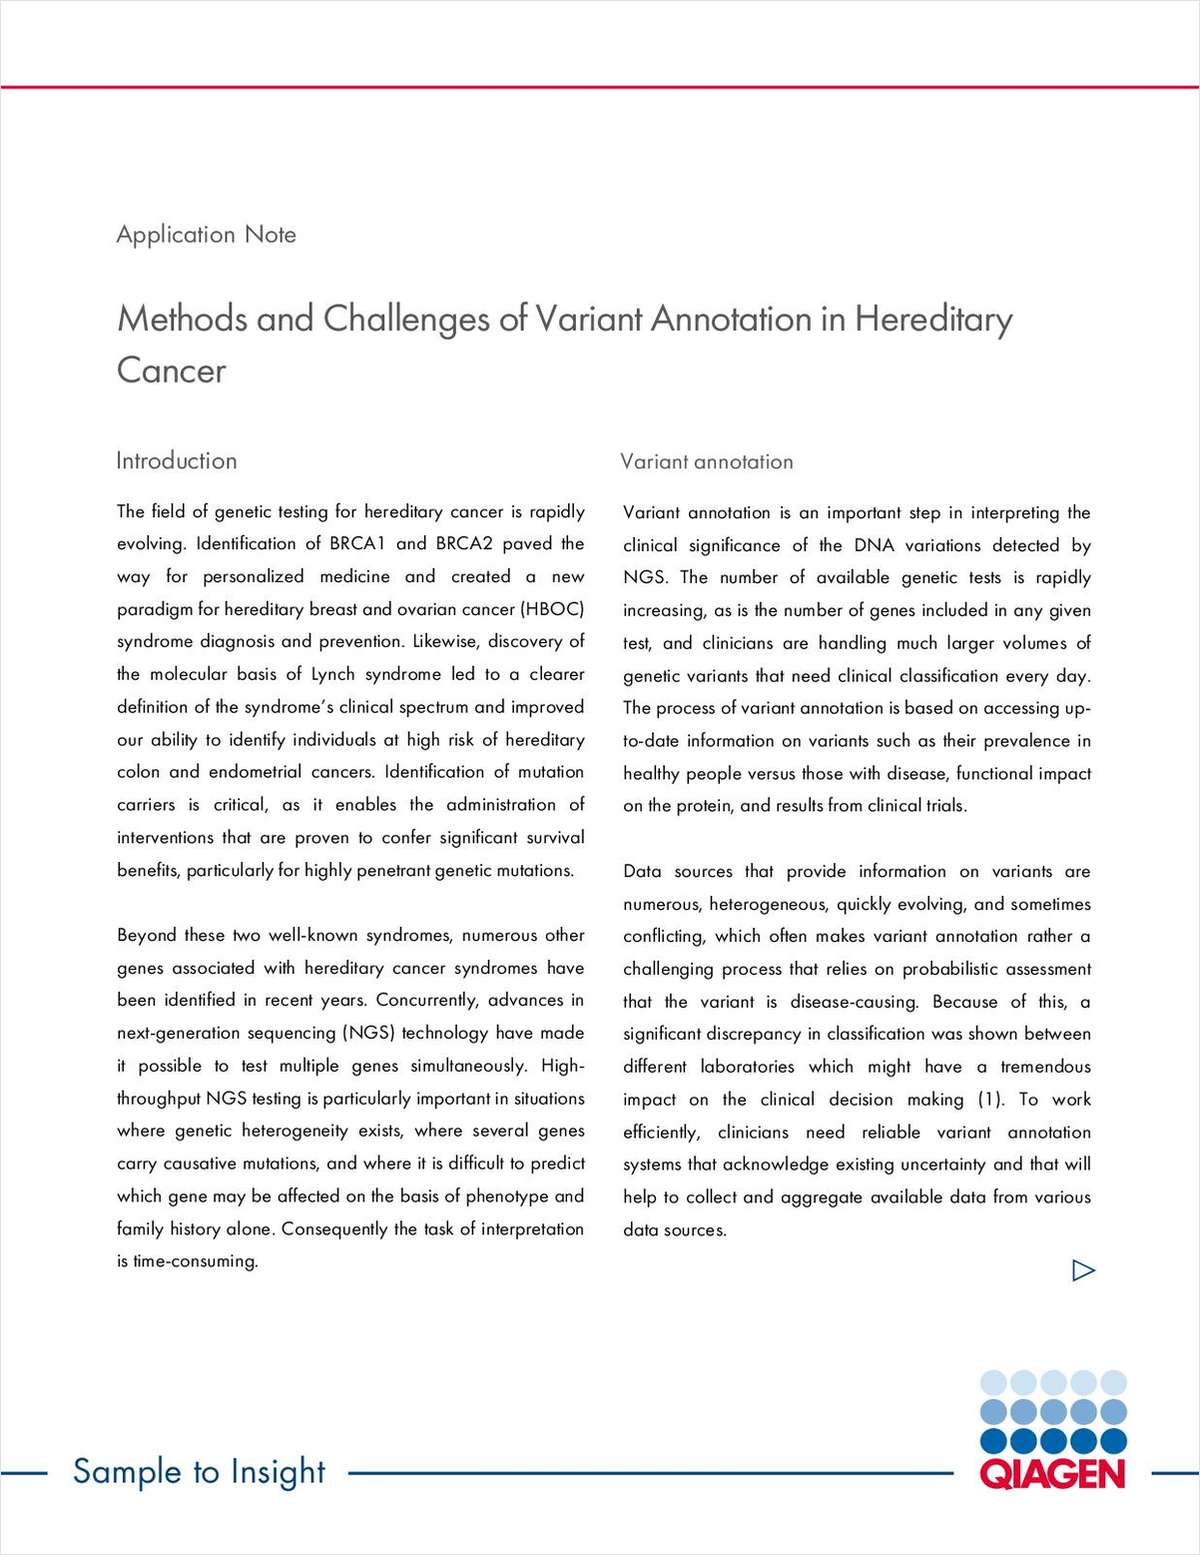 Methods and Challenges of Variant Annotation in Hereditary Cancer